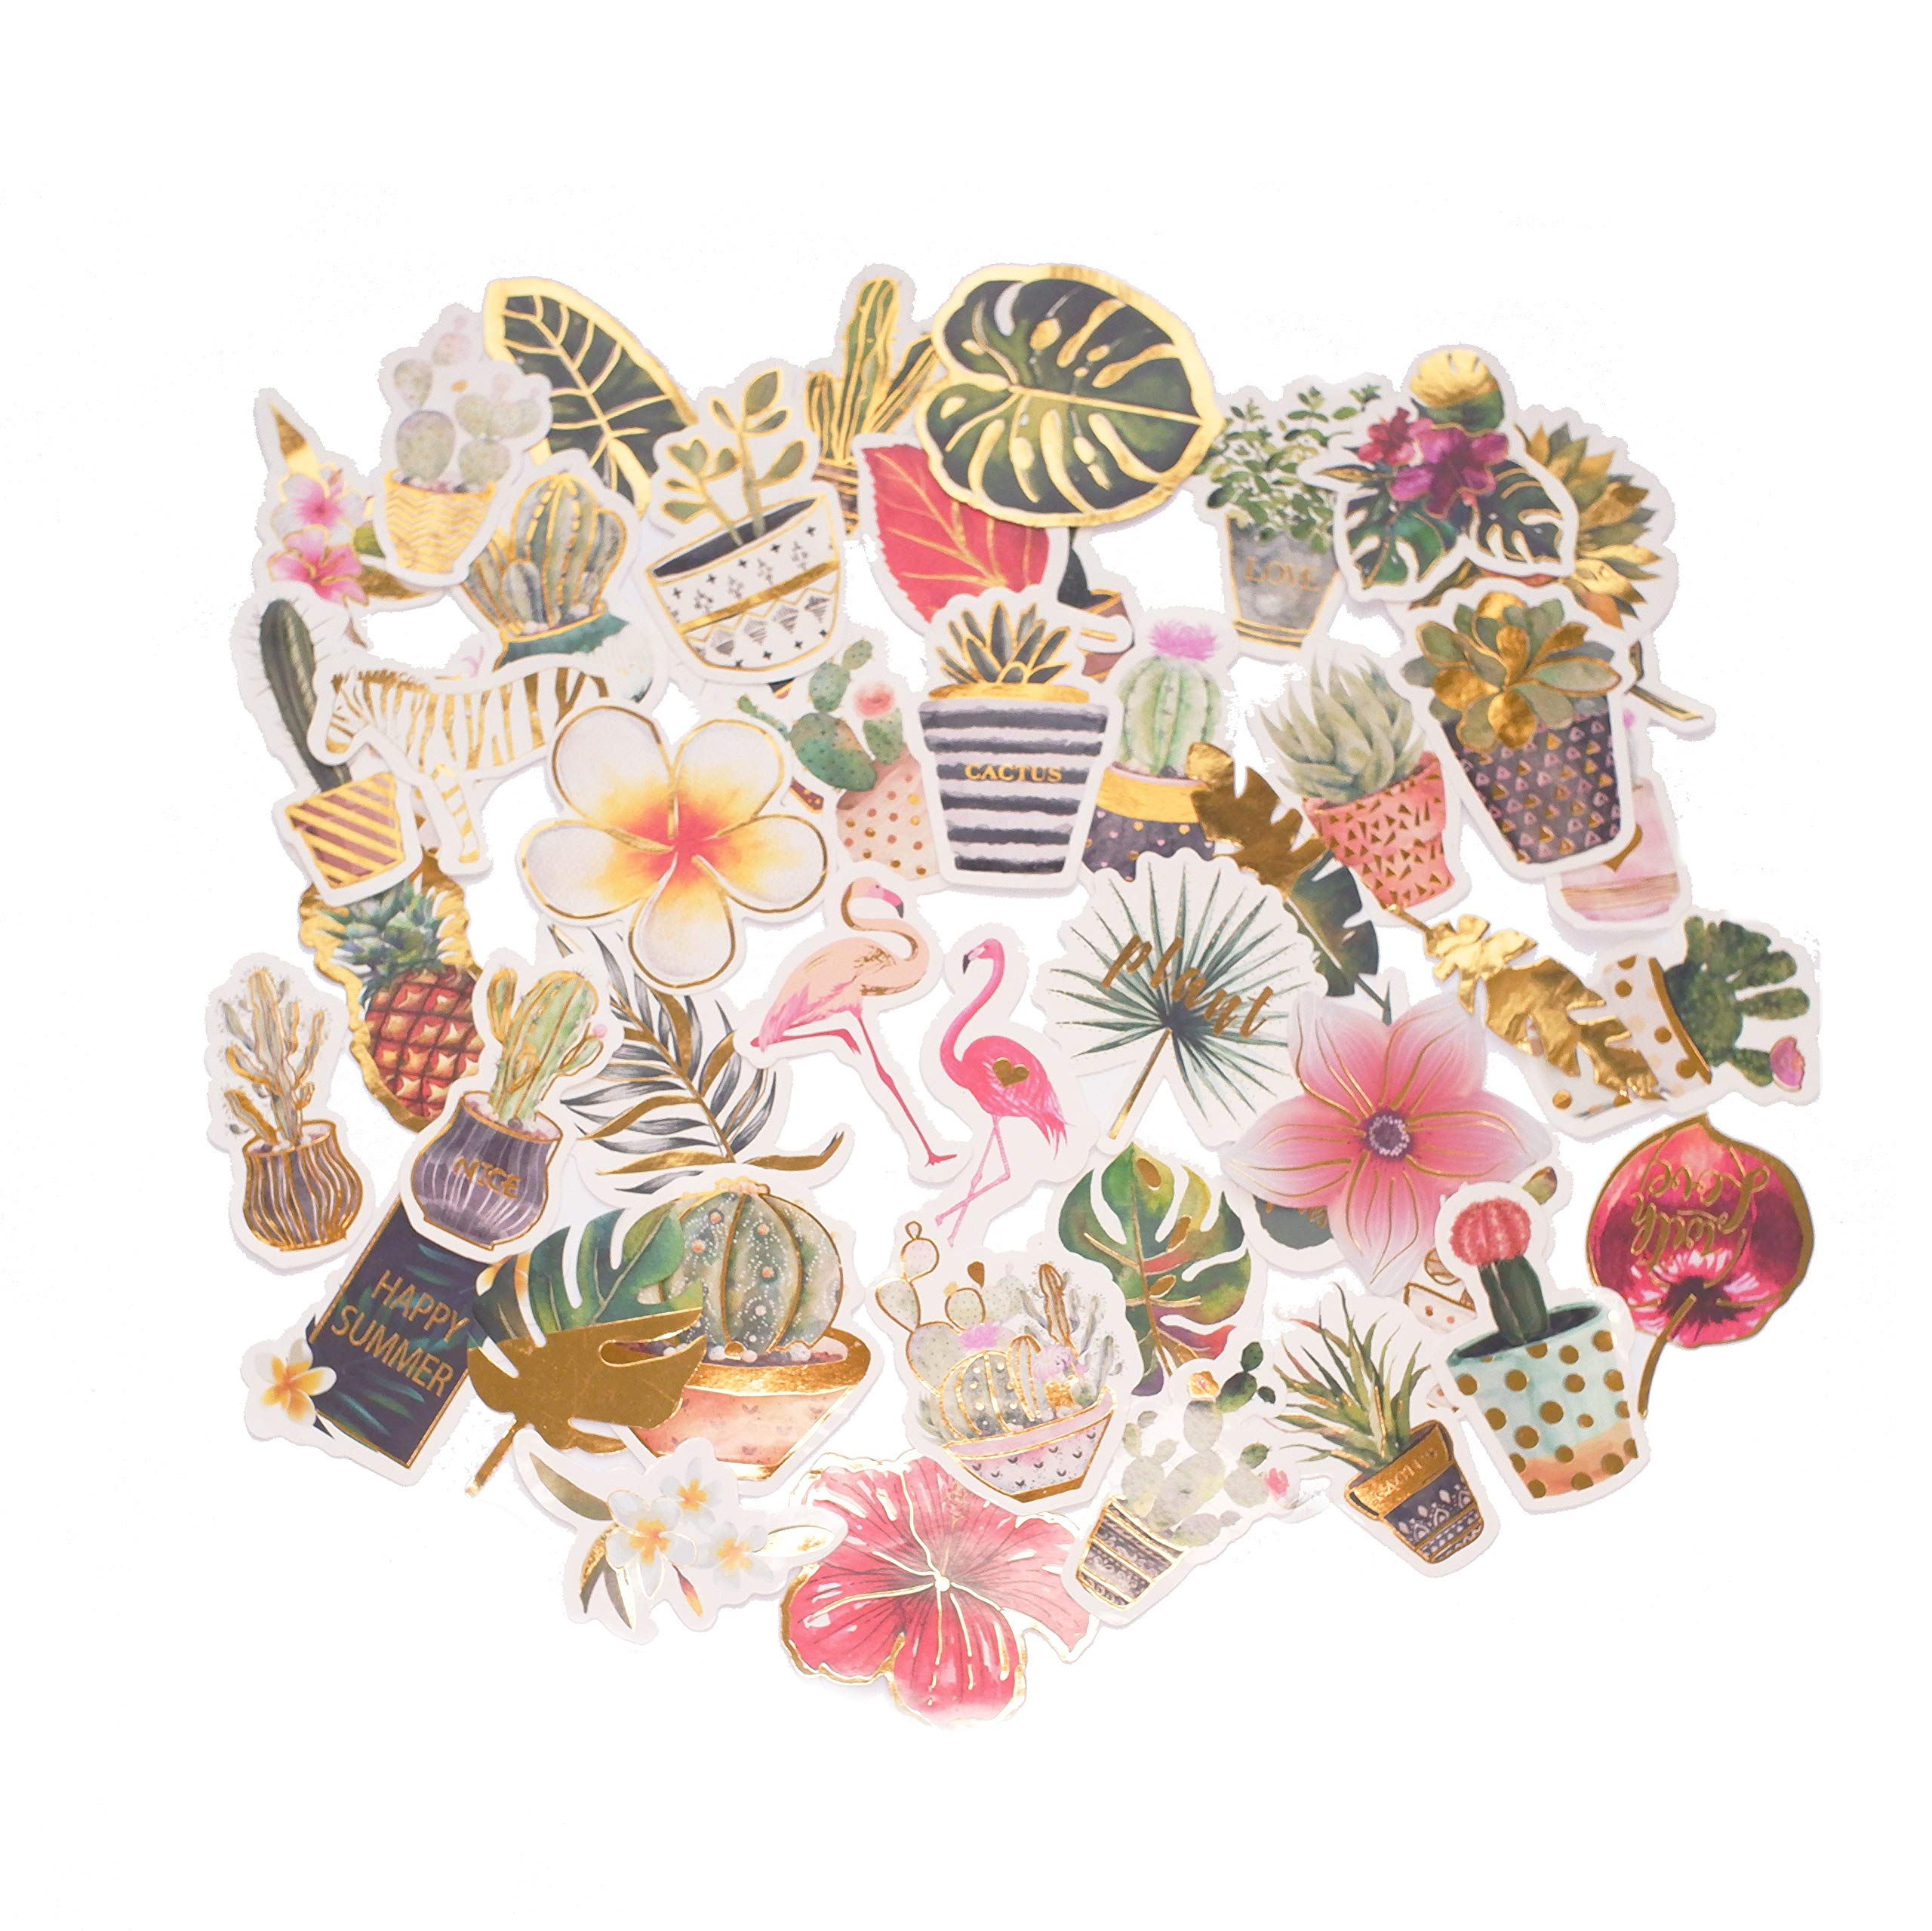 Vann92TM 46 Pieces//Pack Travelling Style Mini Decorative Stickers DIY Sealing